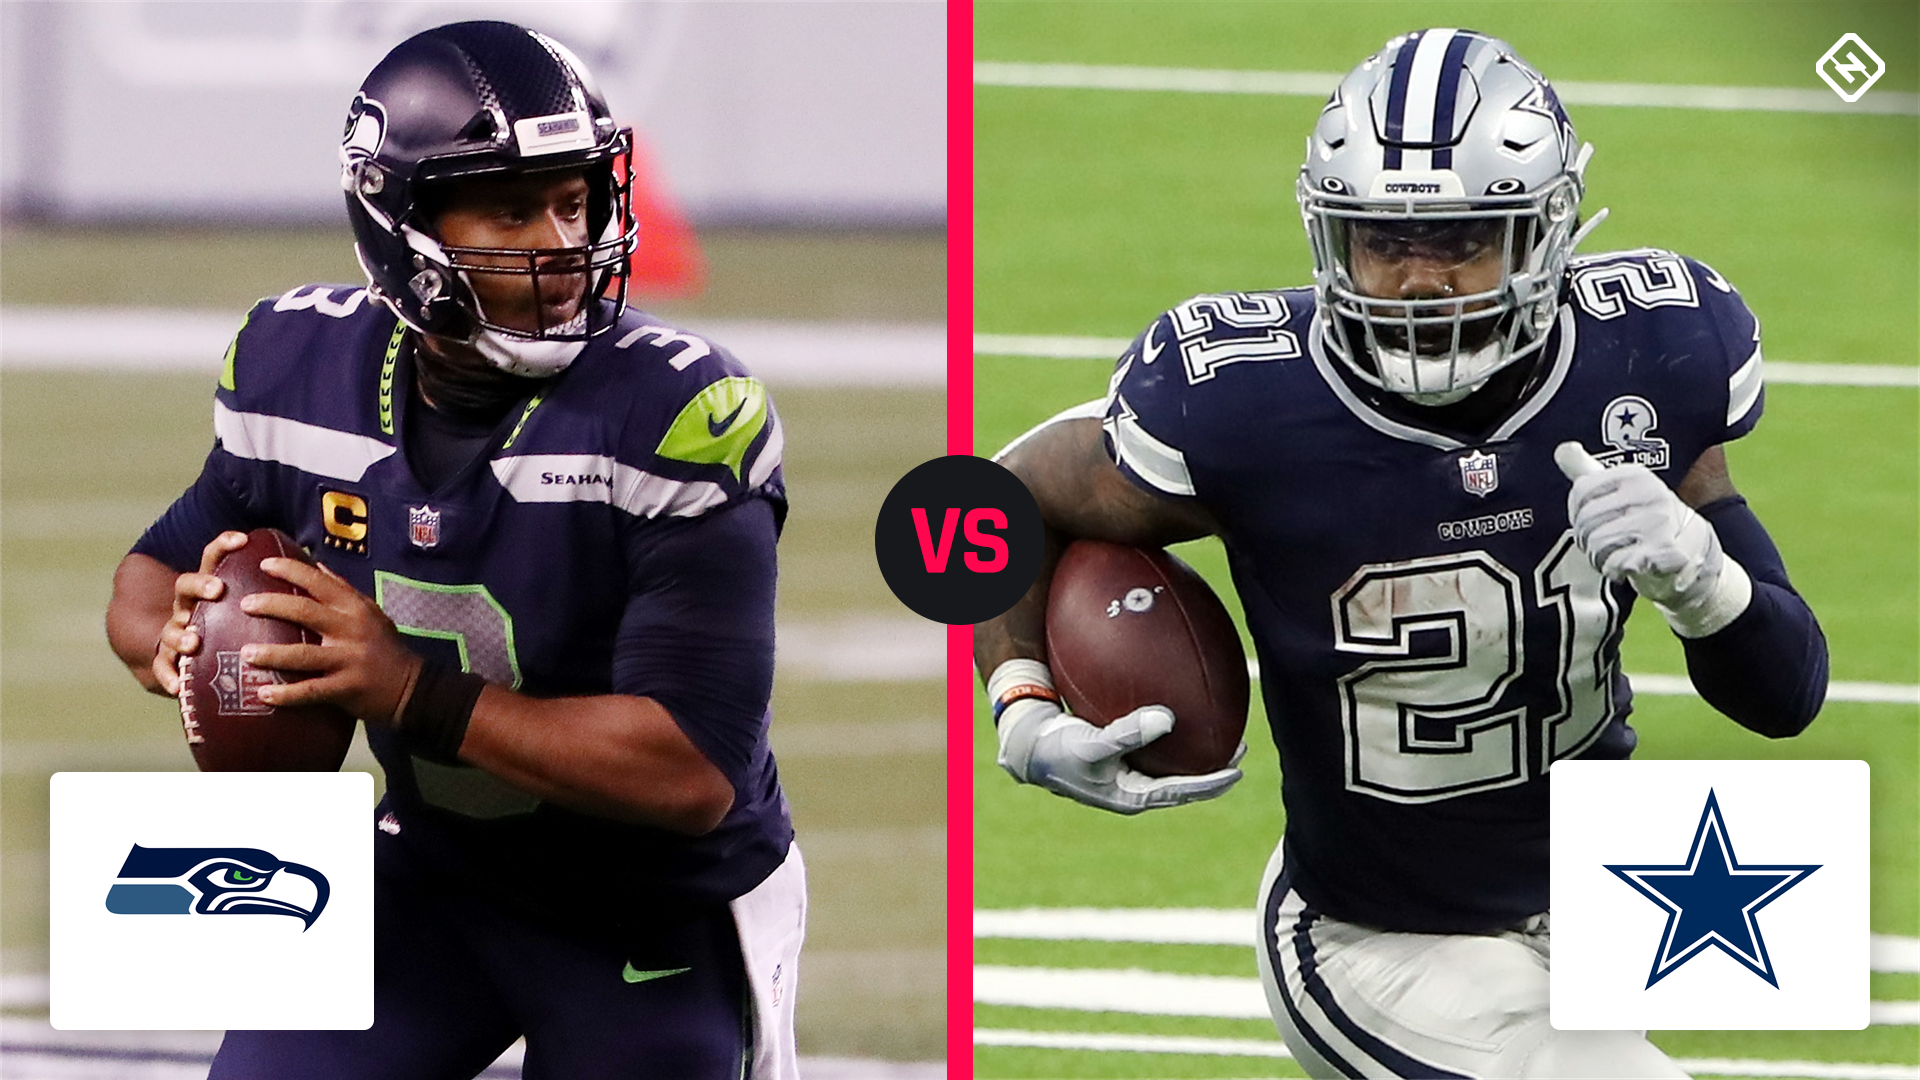 What Channel Is Cowboys Vs Seahawks On Today Time Tv Schedule For Week 3 Nfl Game